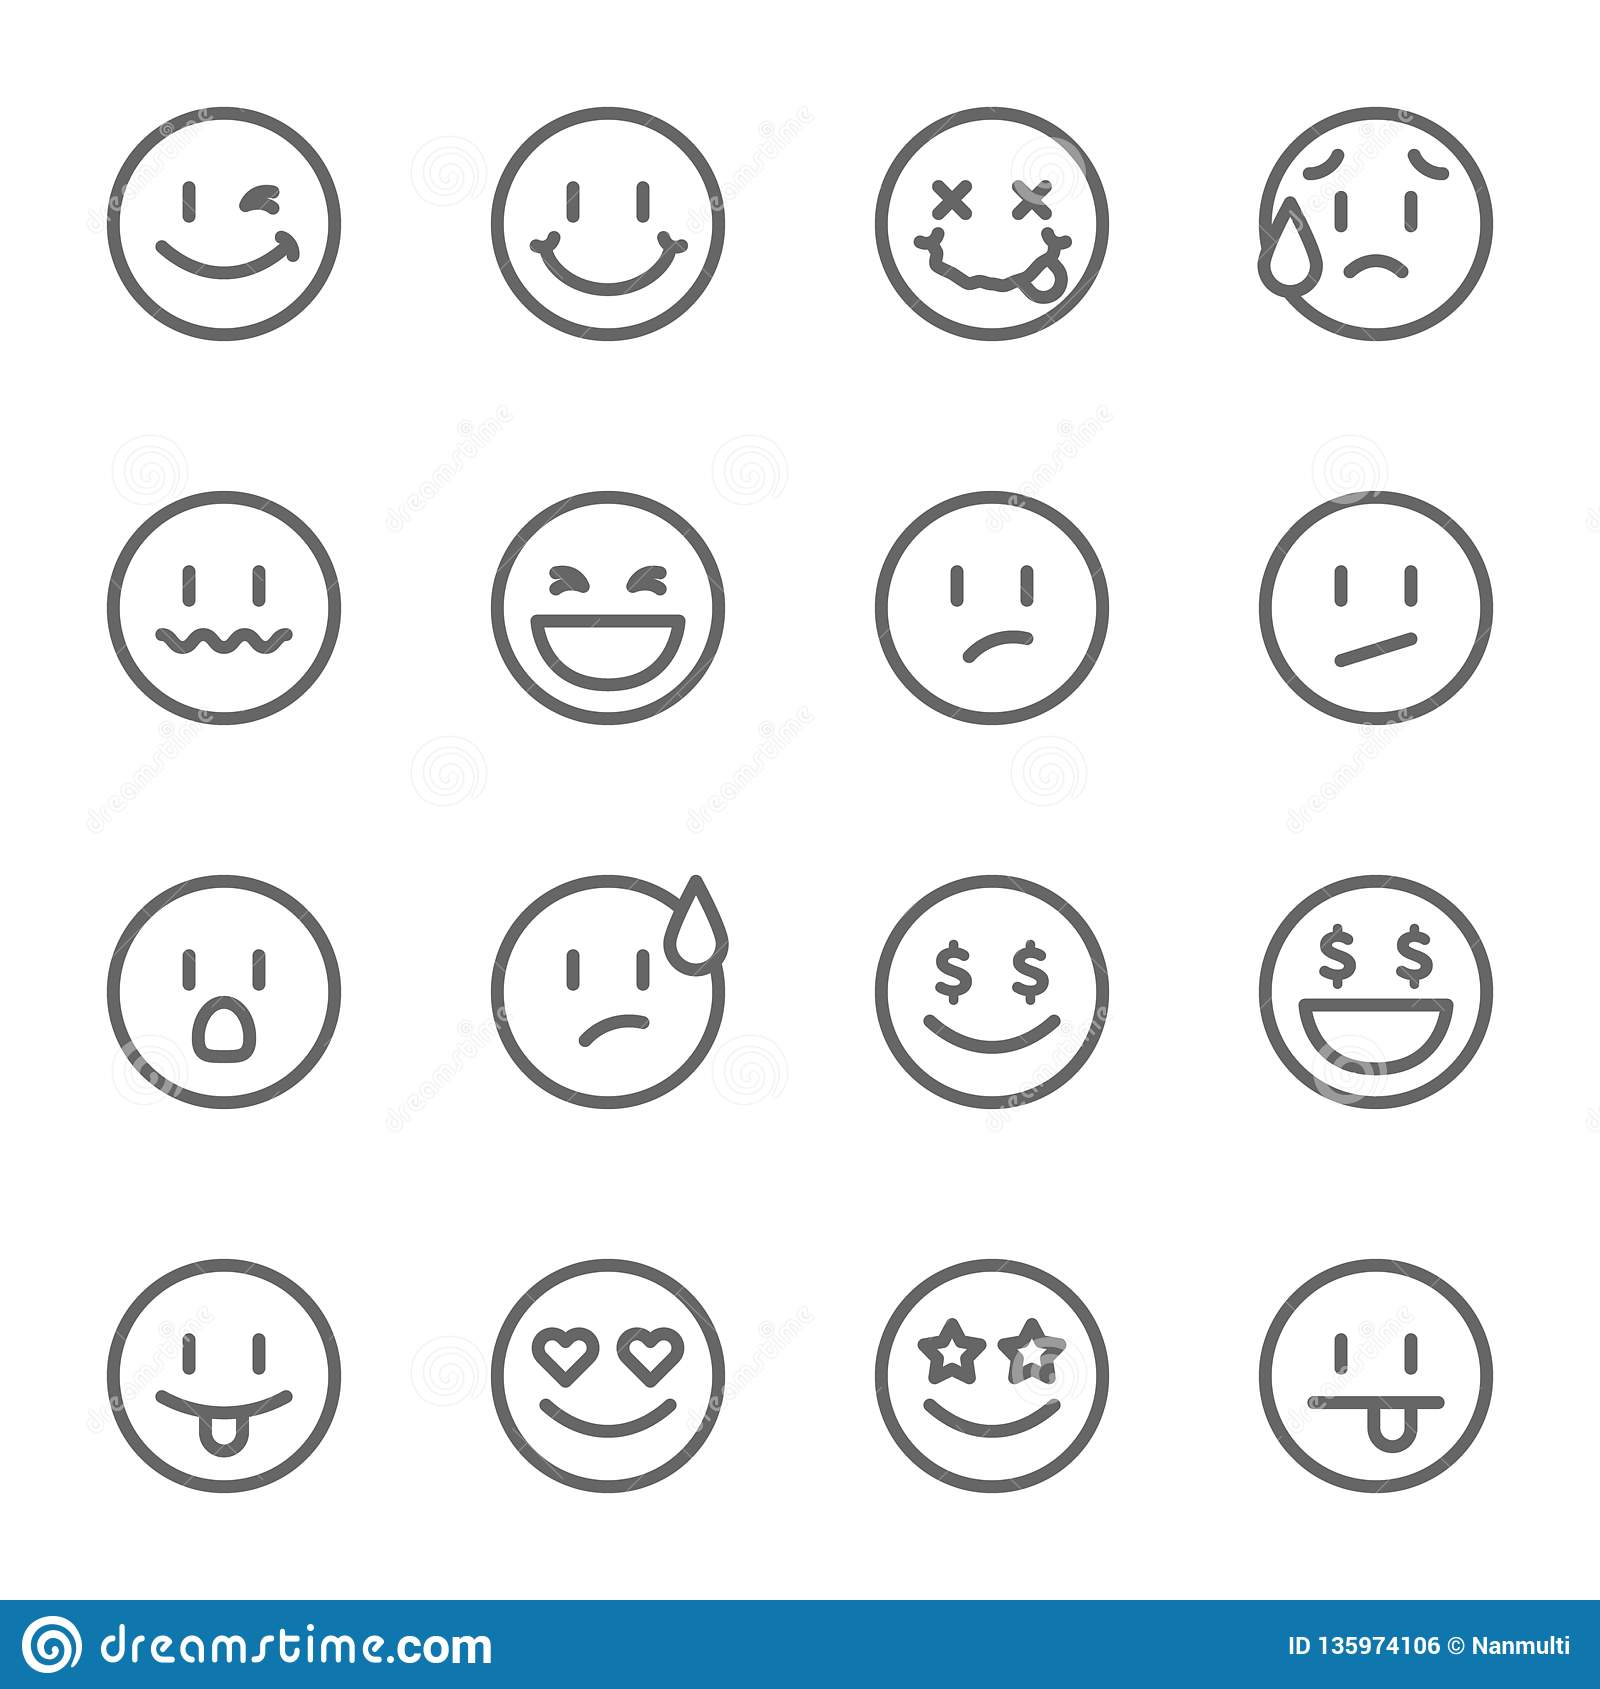 Smiley Face Vector Line Icon Set. Contains such Icons as Happy, Cheeky, Emoji and more. Expanded Stroke